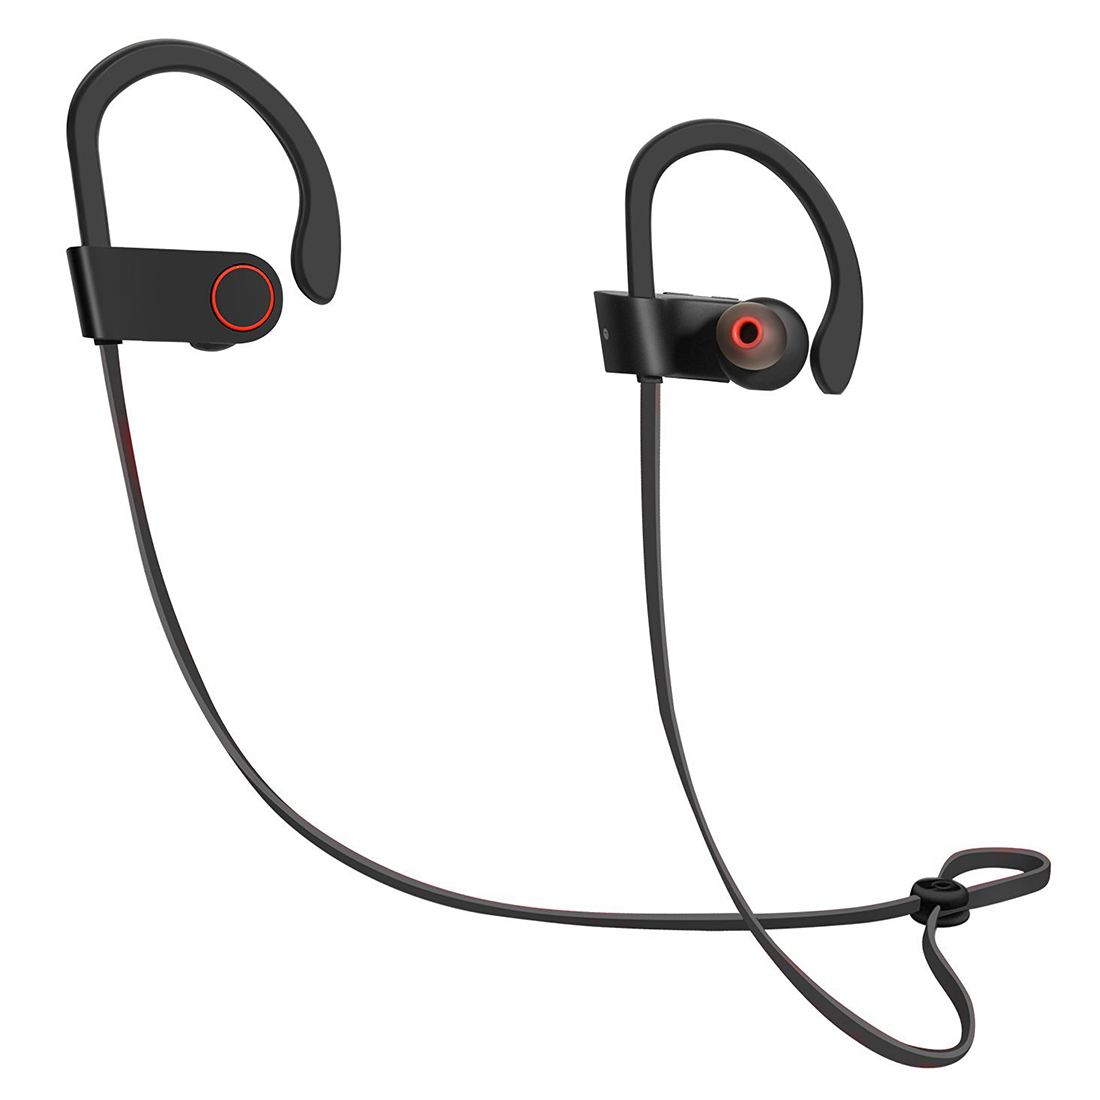 HOT-Wireless Headphones Bluetooth Earbuds Sweatproof In Ear Secure Fit Earphones Loud Bass Noise Reduction with Mic for iPhone